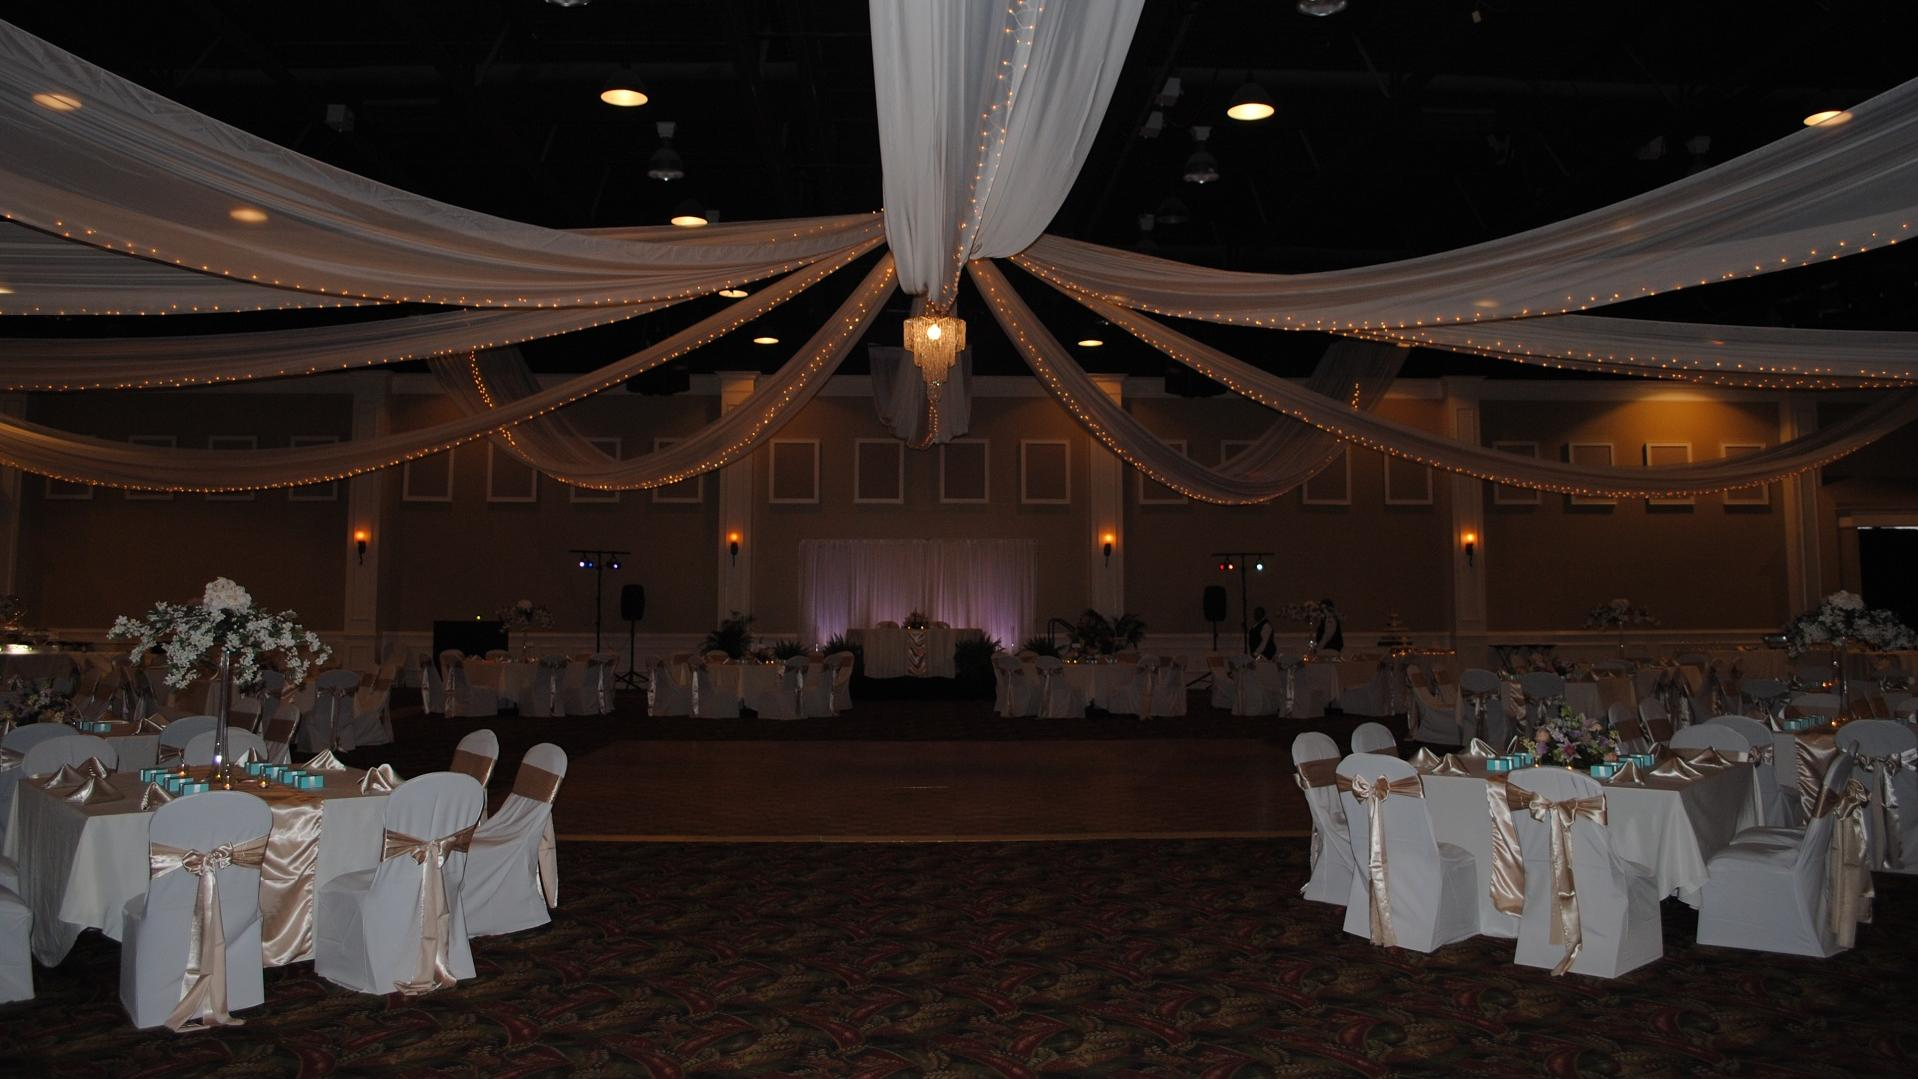 chair cover rentals florence sc white dining table chairs uk rent civic center corporate events wedding locations